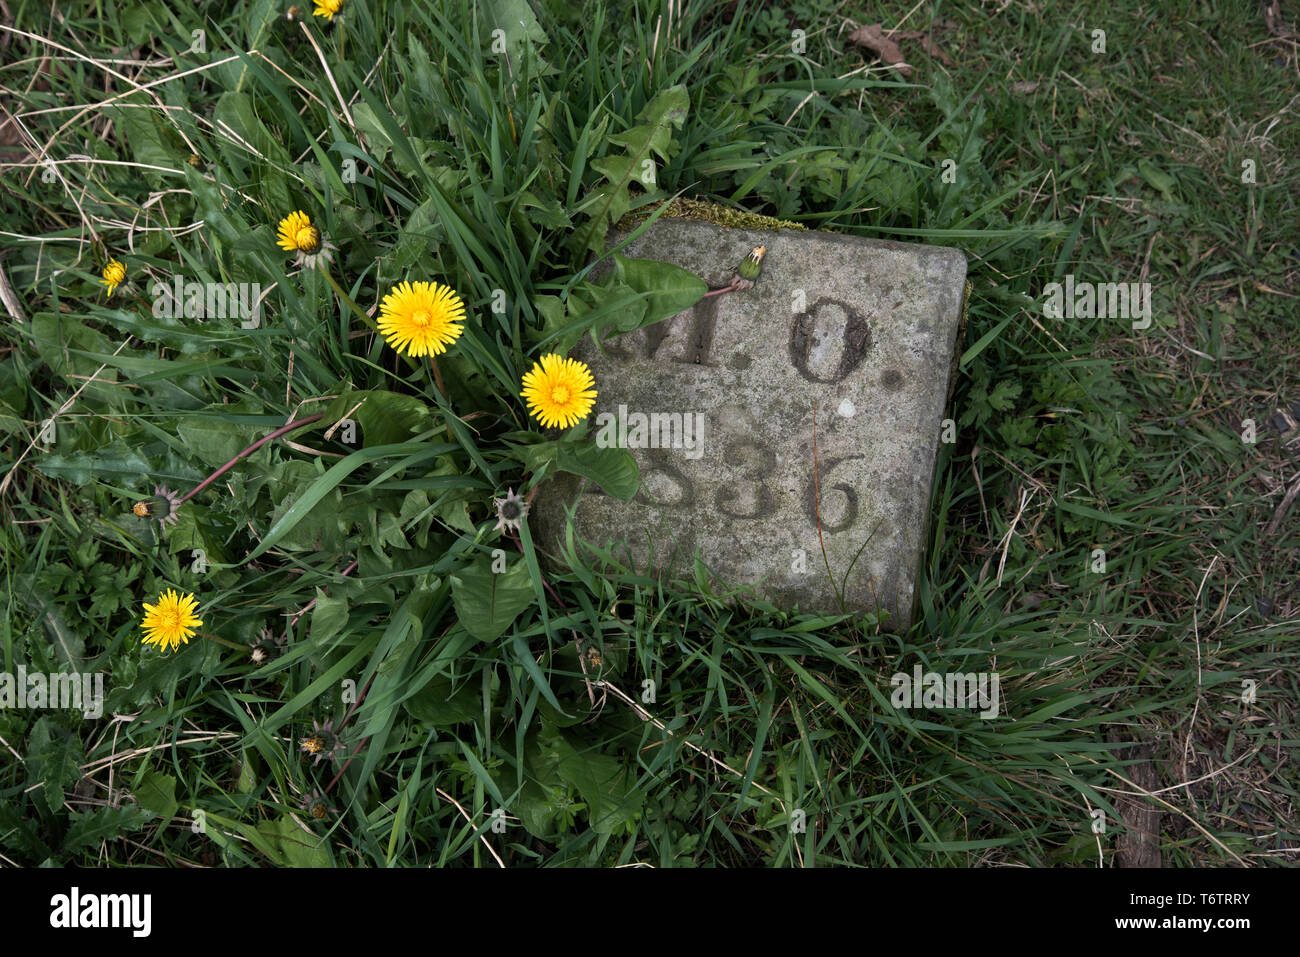 Grave or lair marker with the initials M O and dated 1836 in Greyfriars Kirkyard, Edinburgh, Scotland, UK. - Stock Image